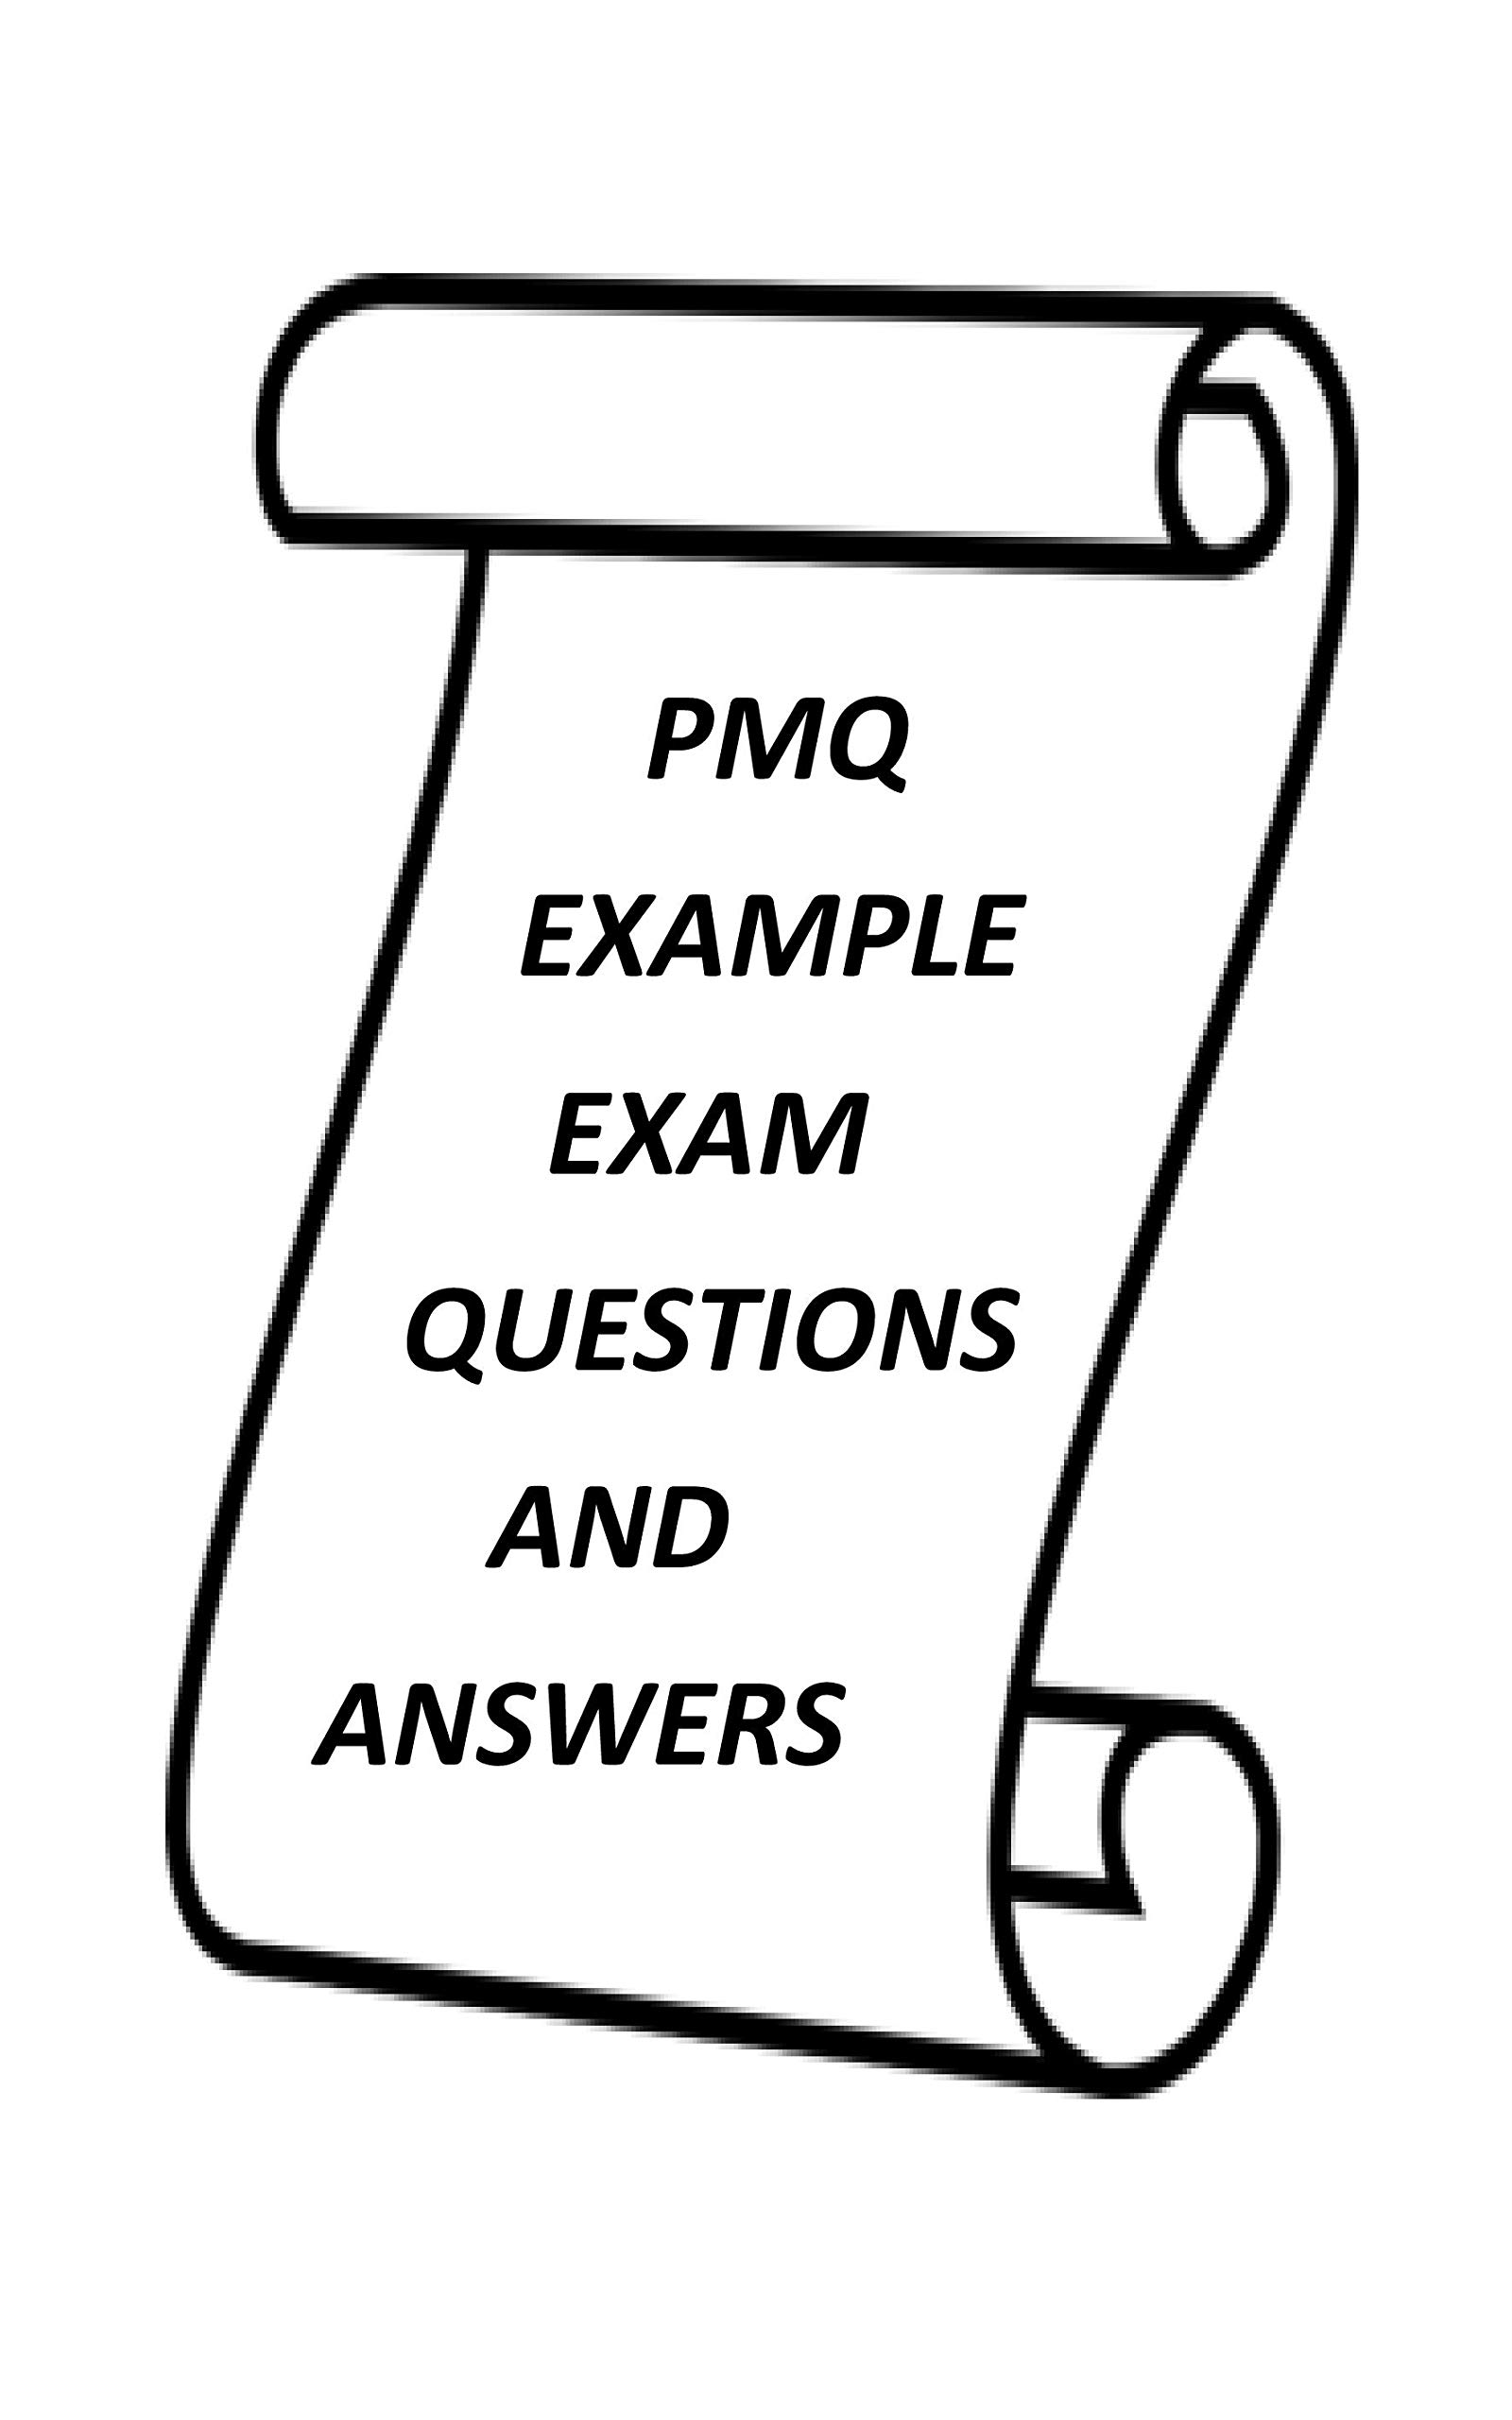 PMQ EXAMPLE EXAM QUESTIONS AND ANSWERS